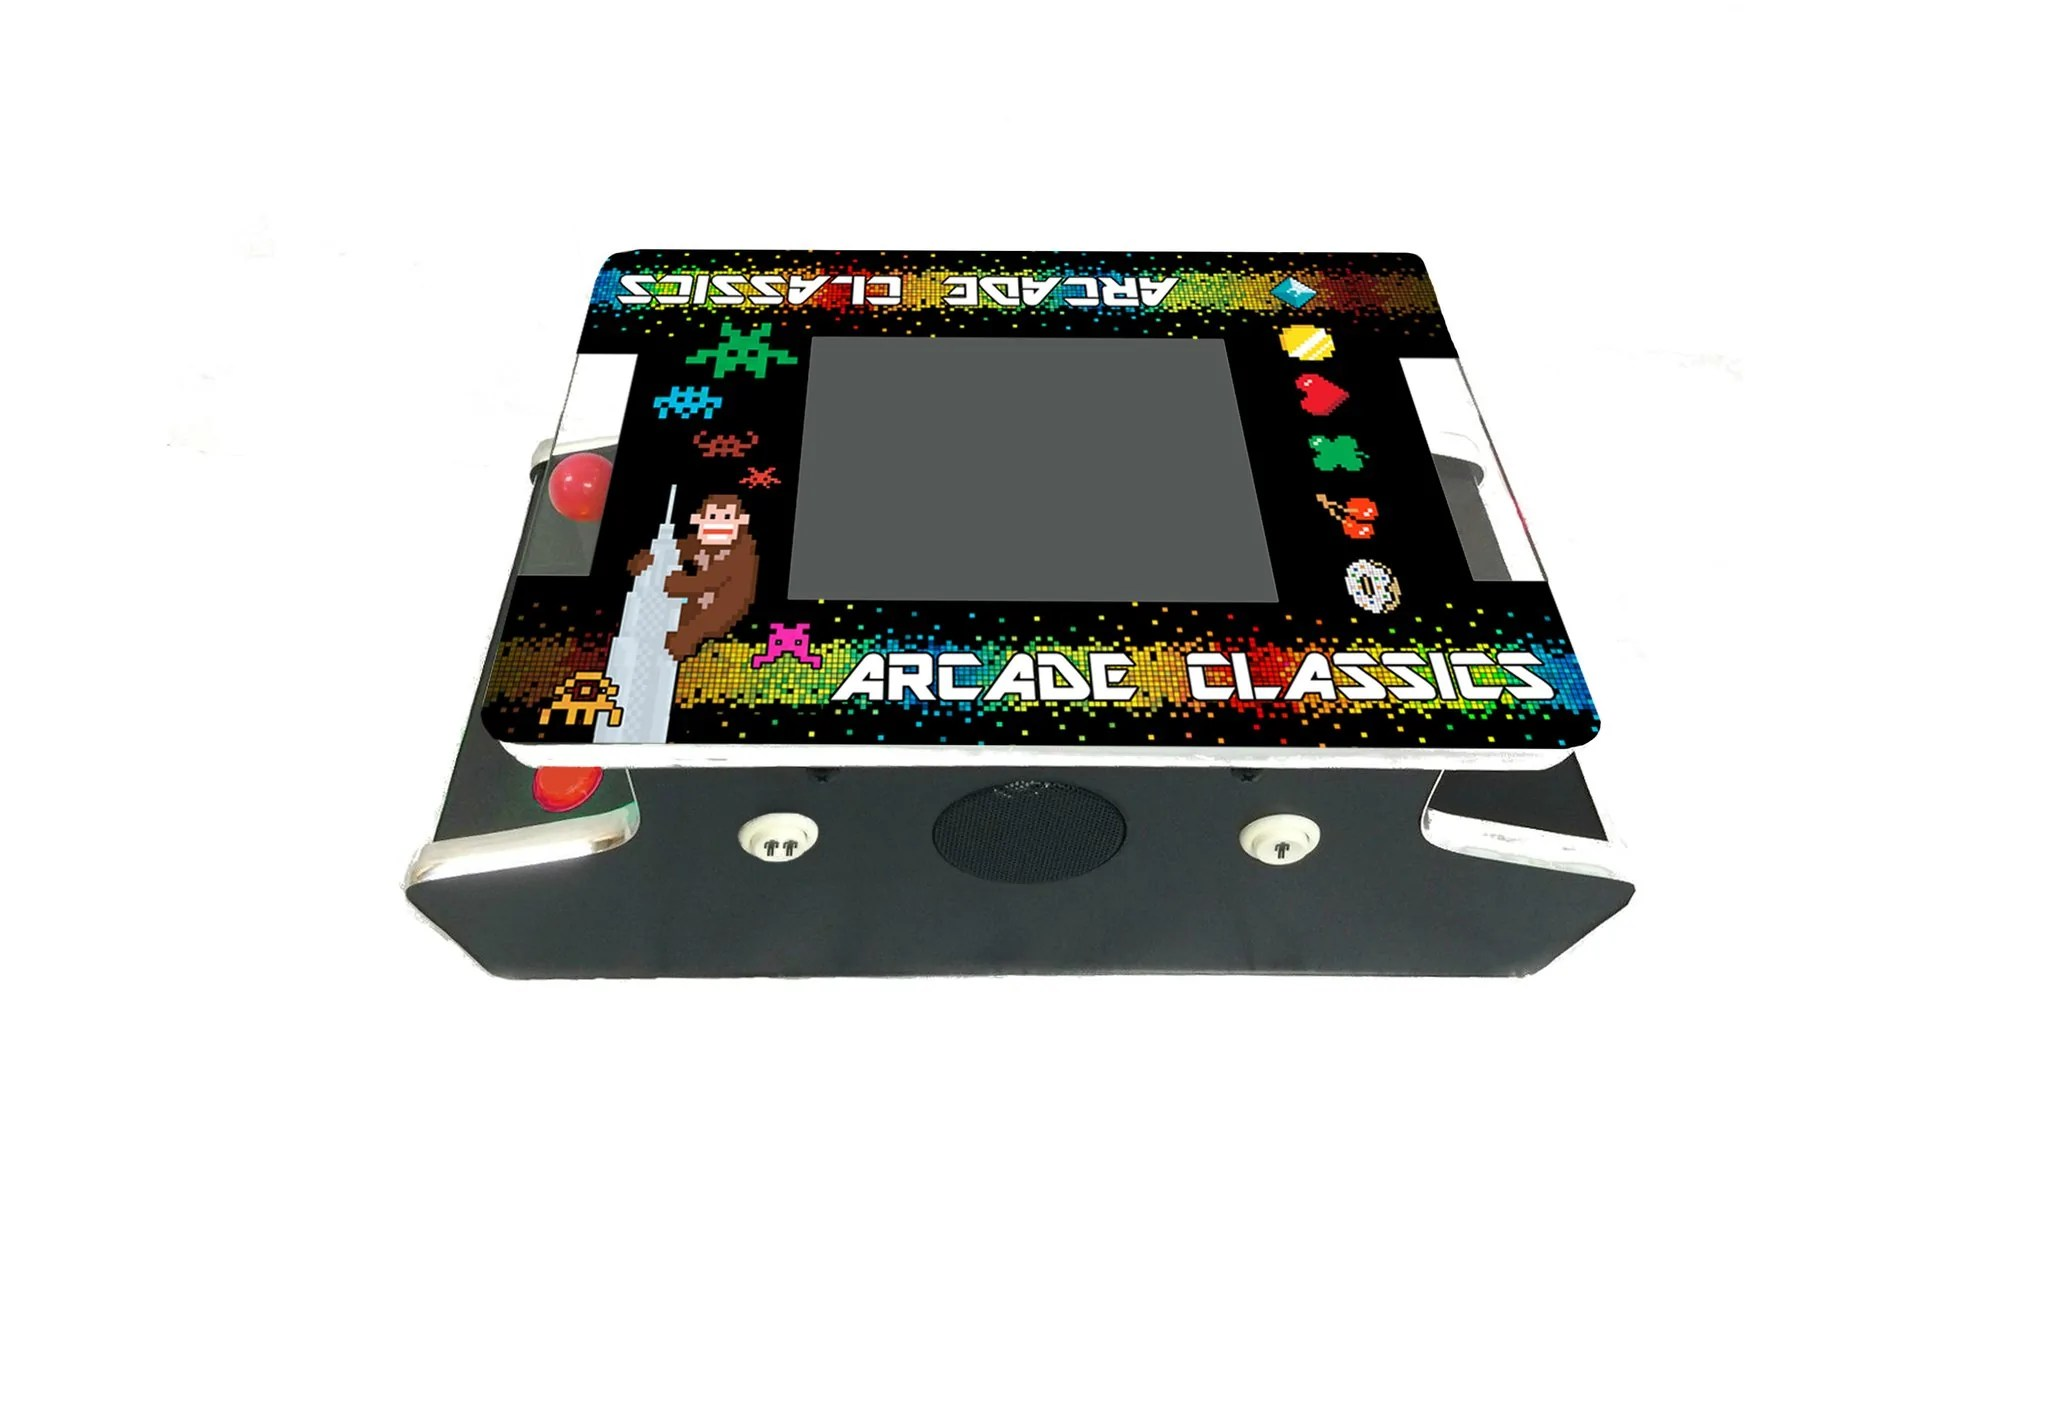 Classic Table Arcade Games Mini Cocktail Table Arcade With 412 Classic Golden Age Games